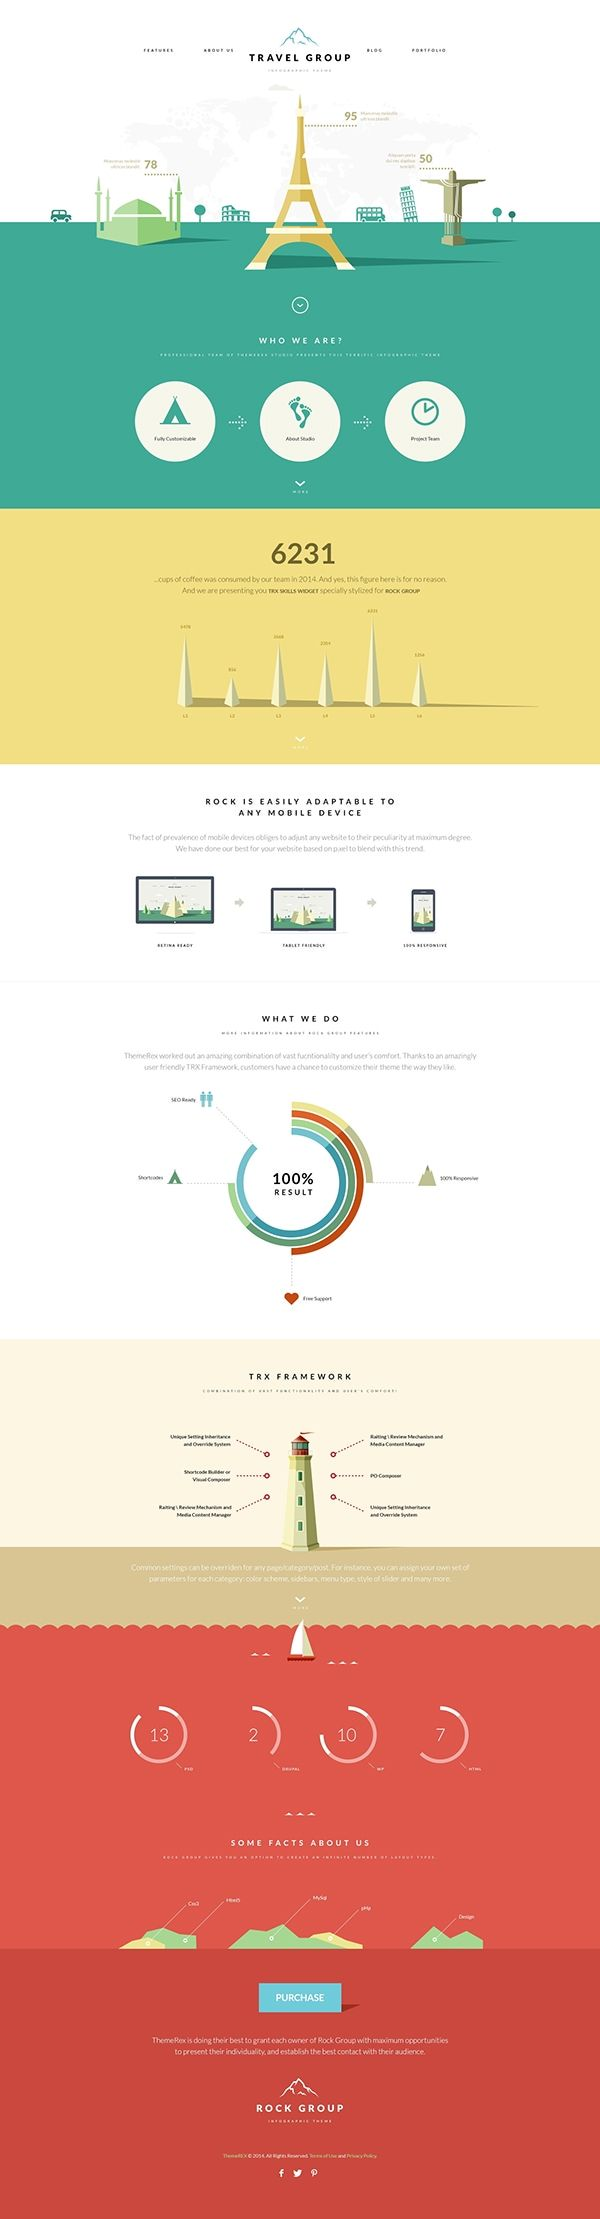 rock group multipurpose infographic theme color blocking an interesting infographic simple and modern good job a project by